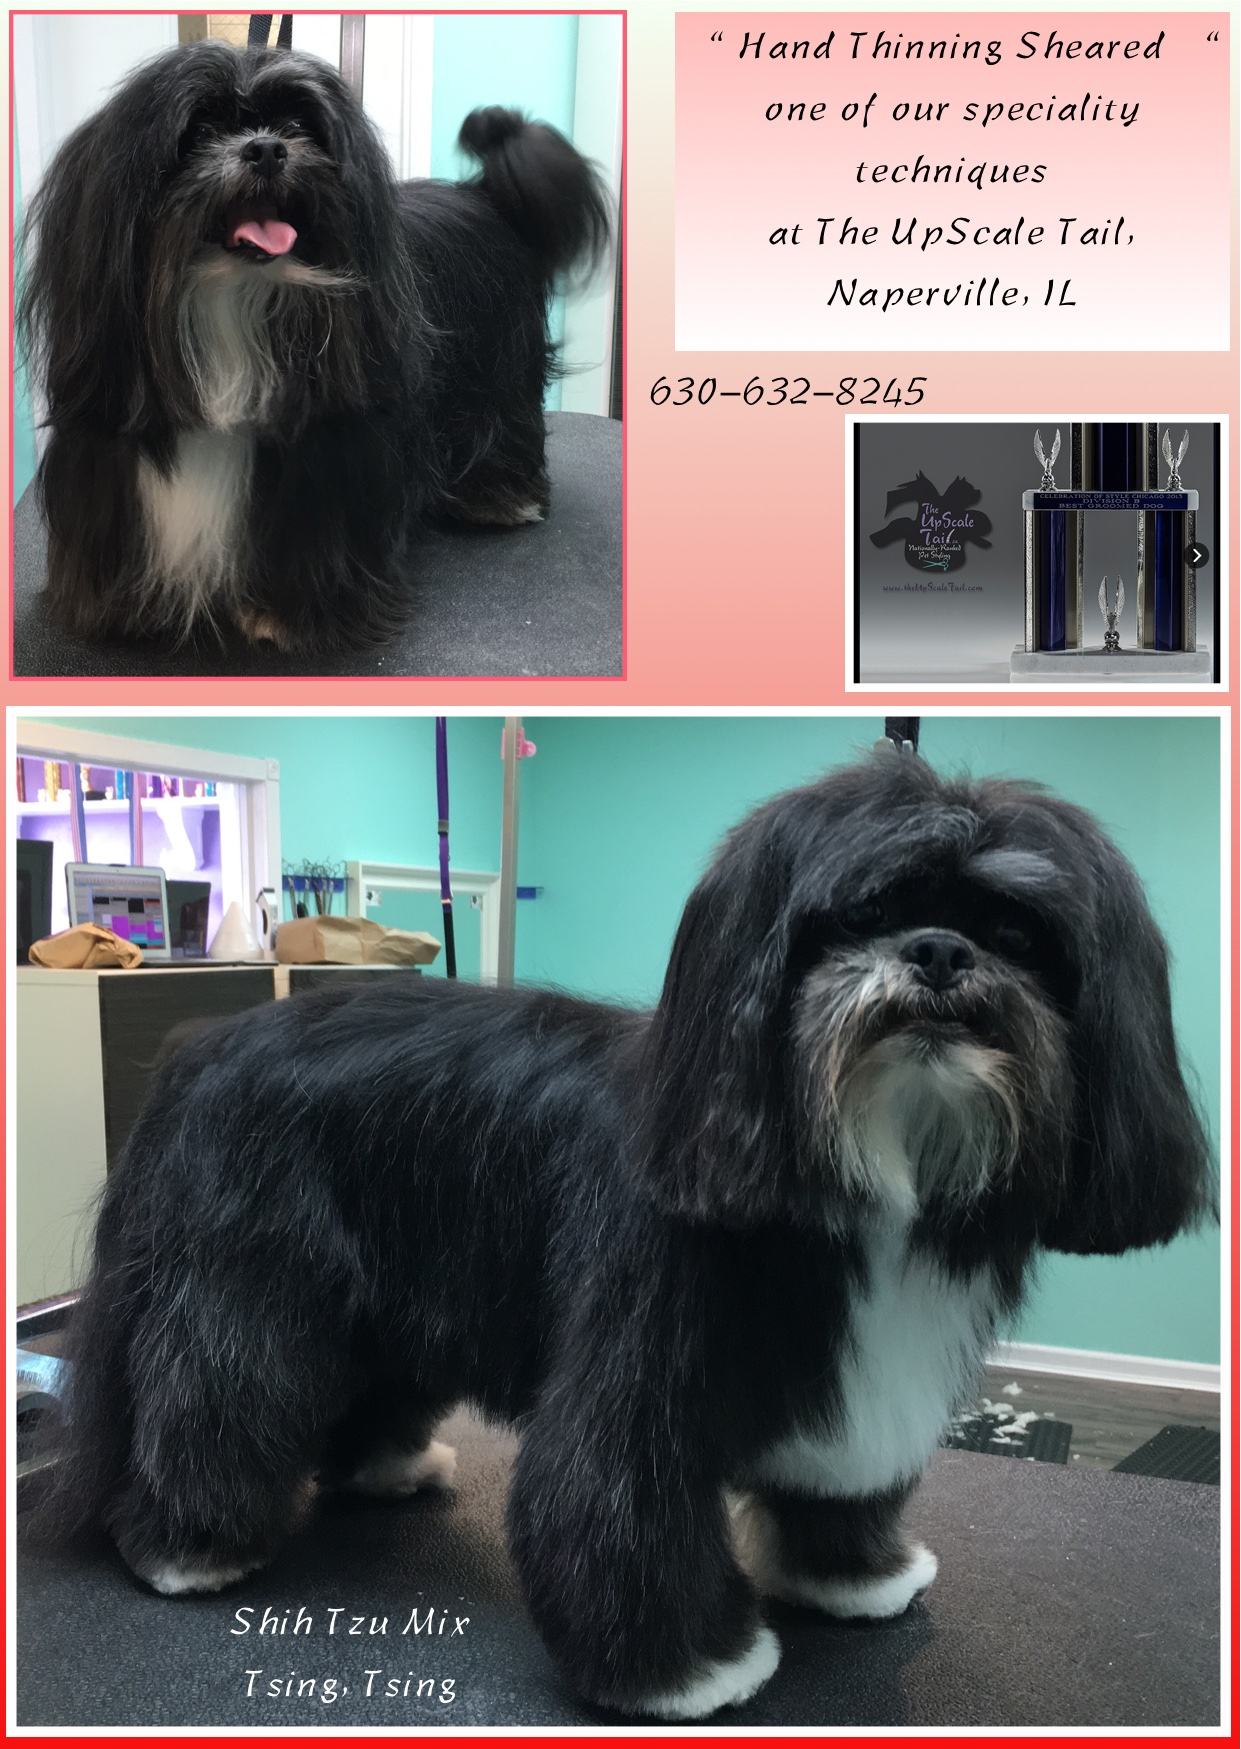 Tsing Tsing Shih Tzu Mix The Upscale Tail Pet Grooming Salon In